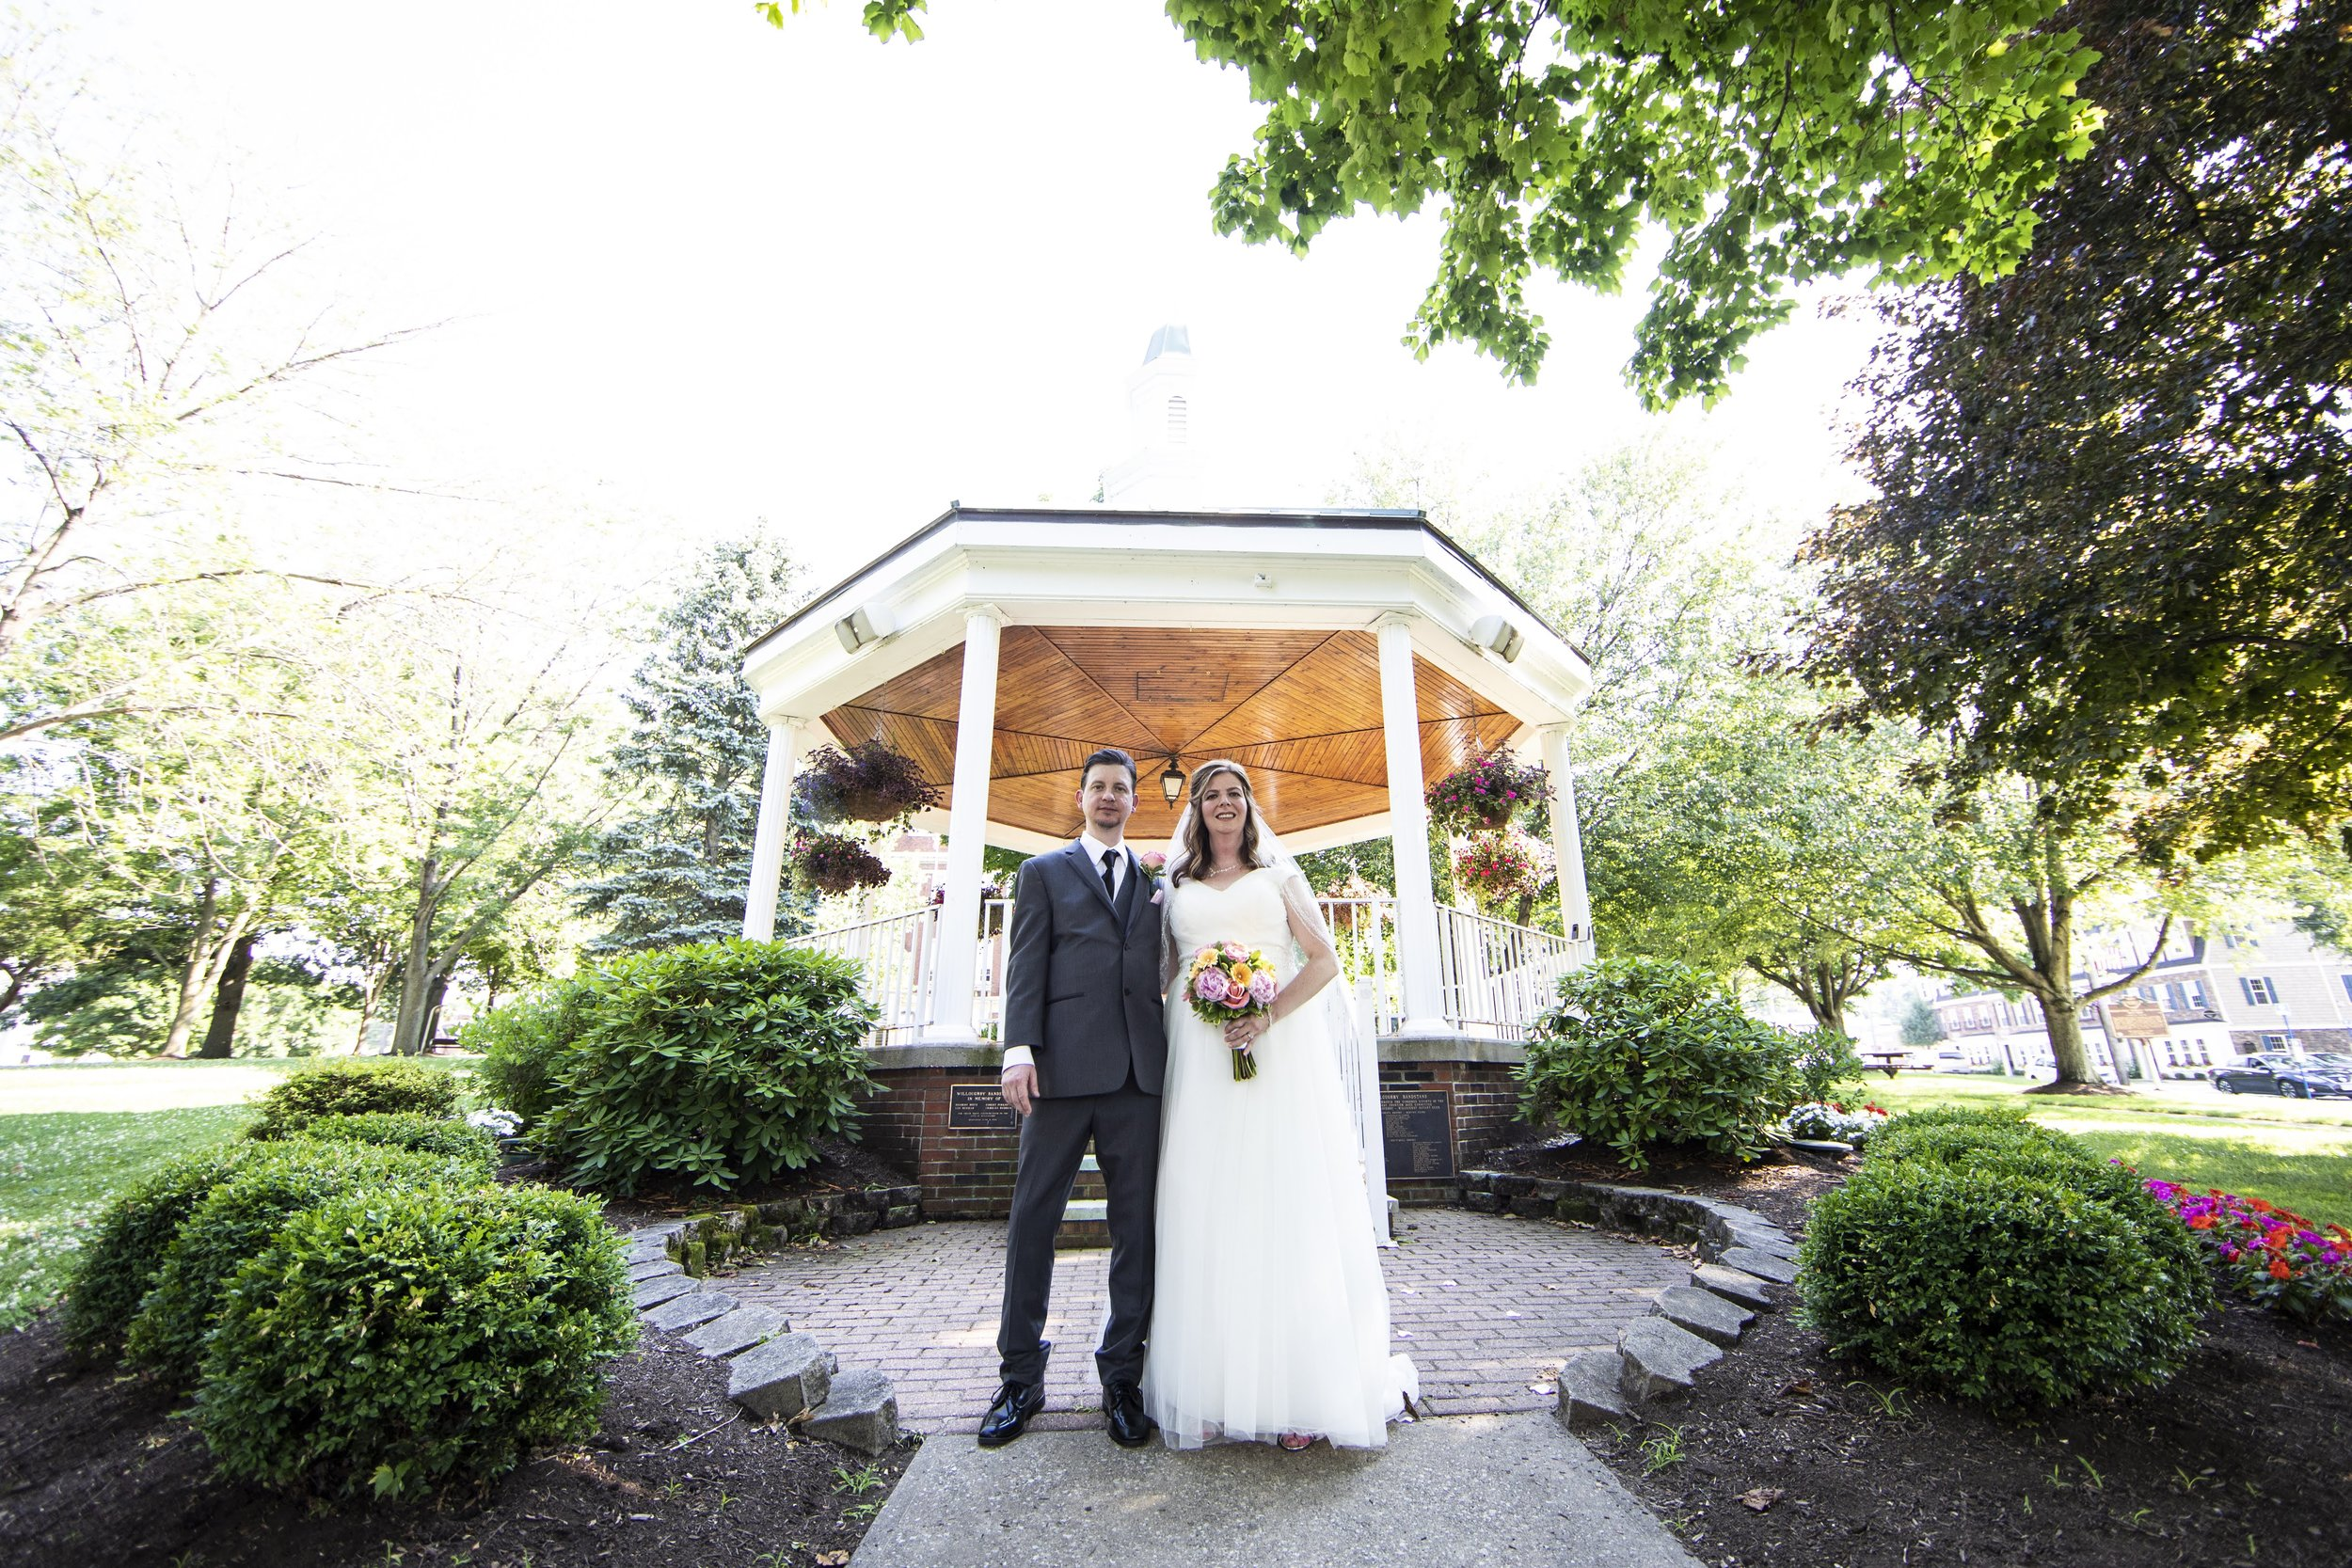 PAM & RANDY AT COULBY PARK - June 30th, 2018